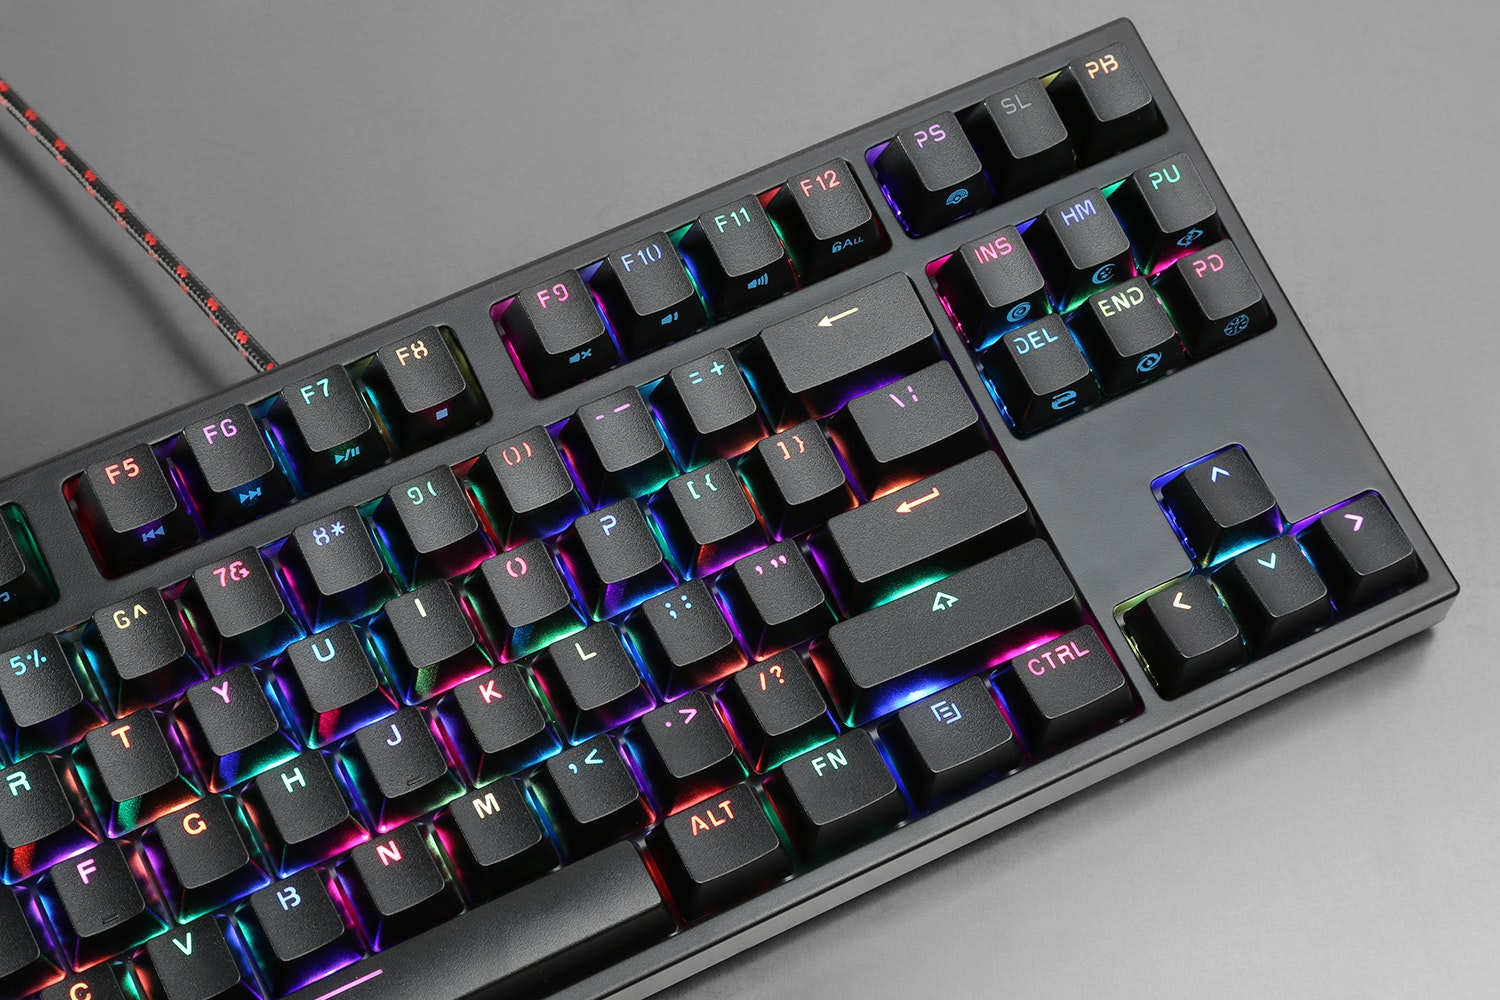 Keycool 87 RGB Mechanical Keyboard